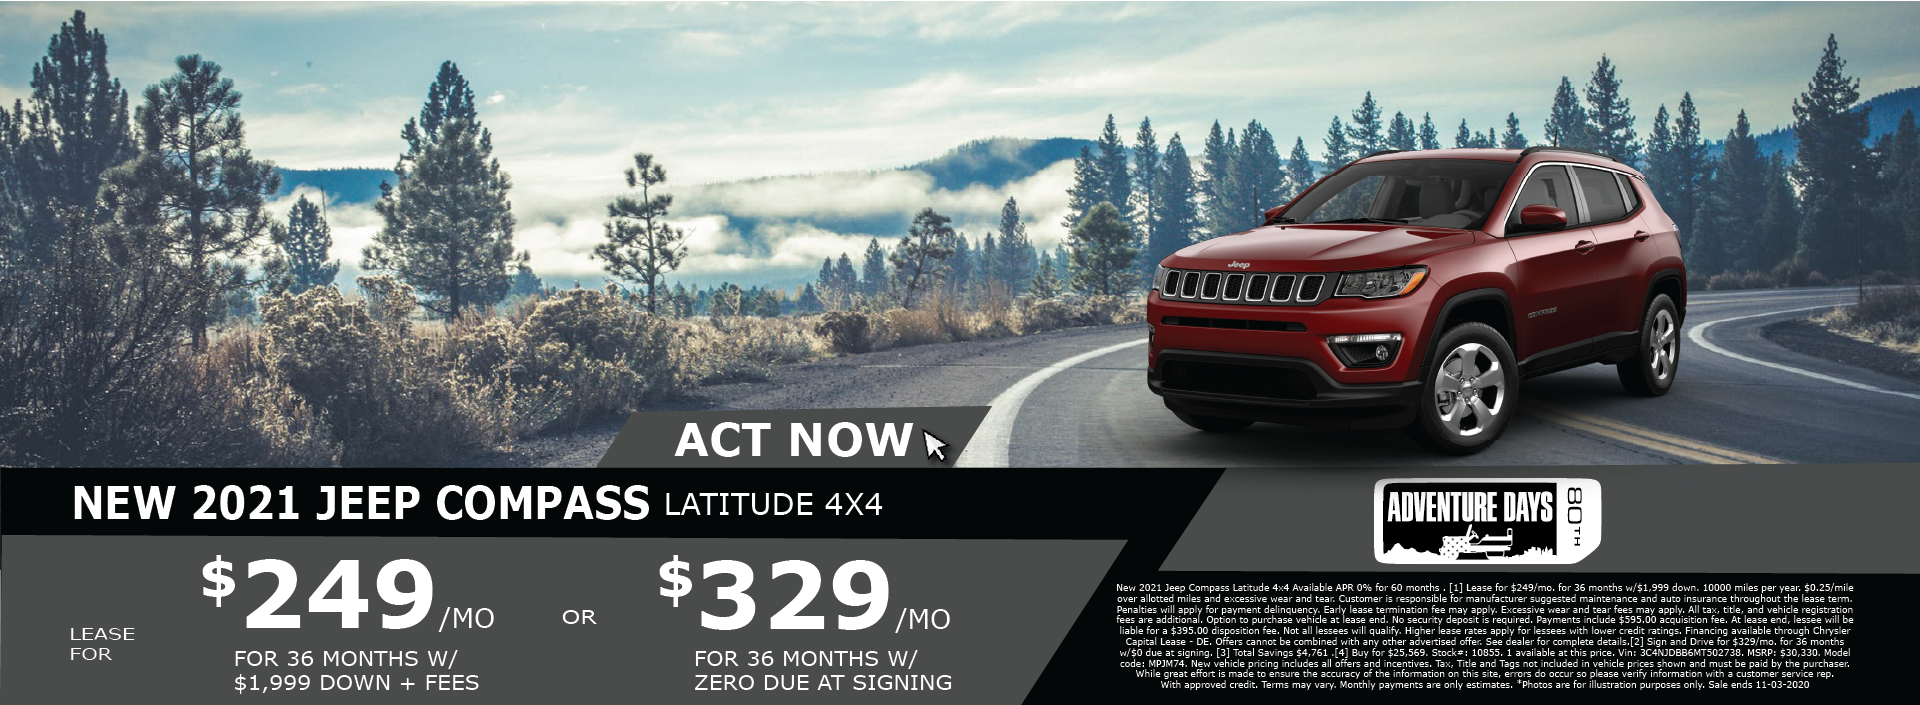 Whitewater – Jeep Compass October 2020